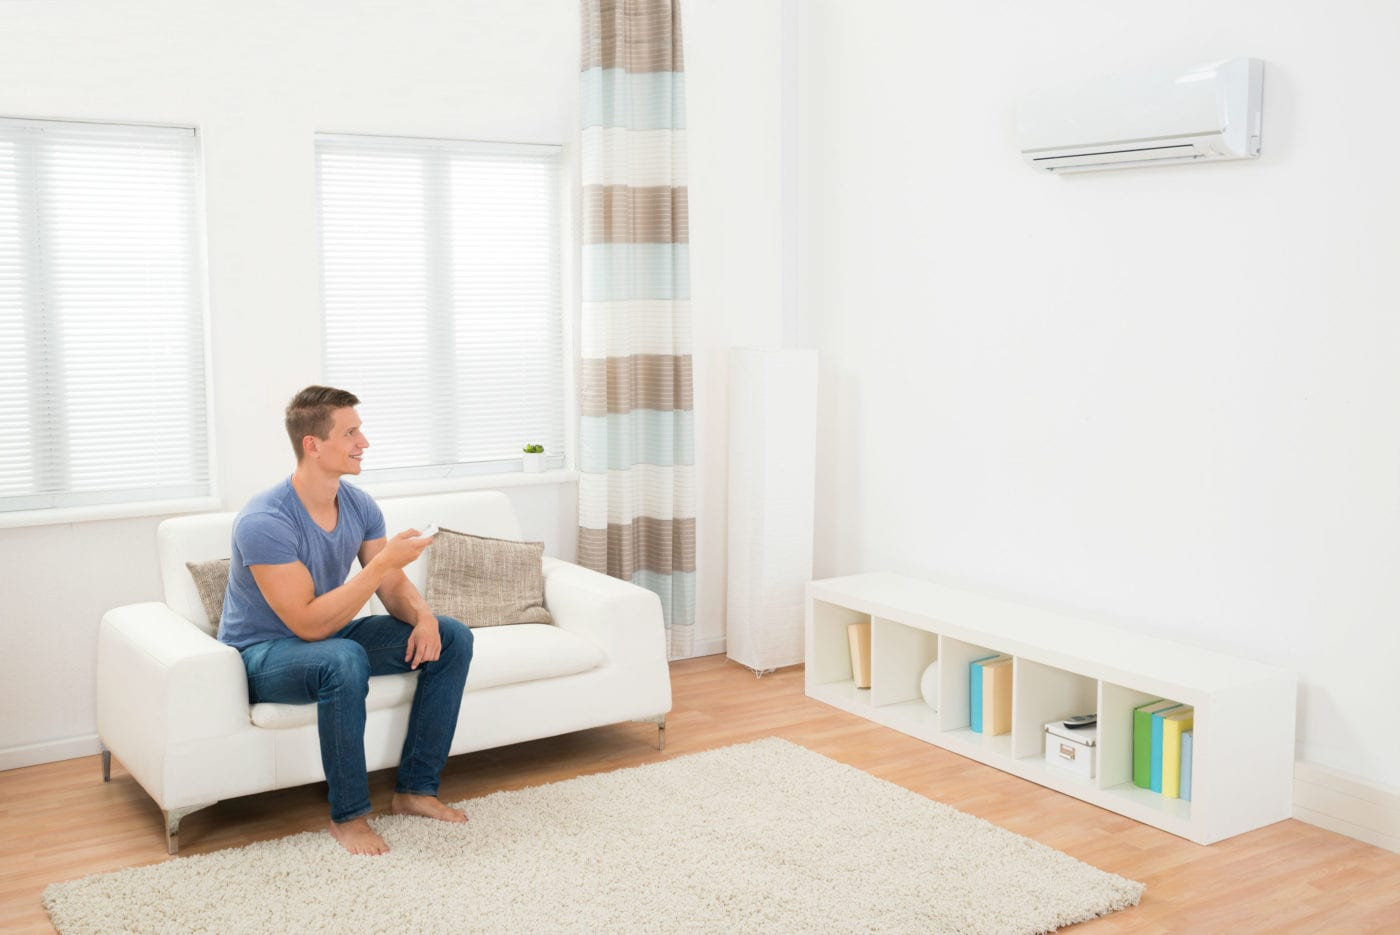 Home Air Conditioning Options